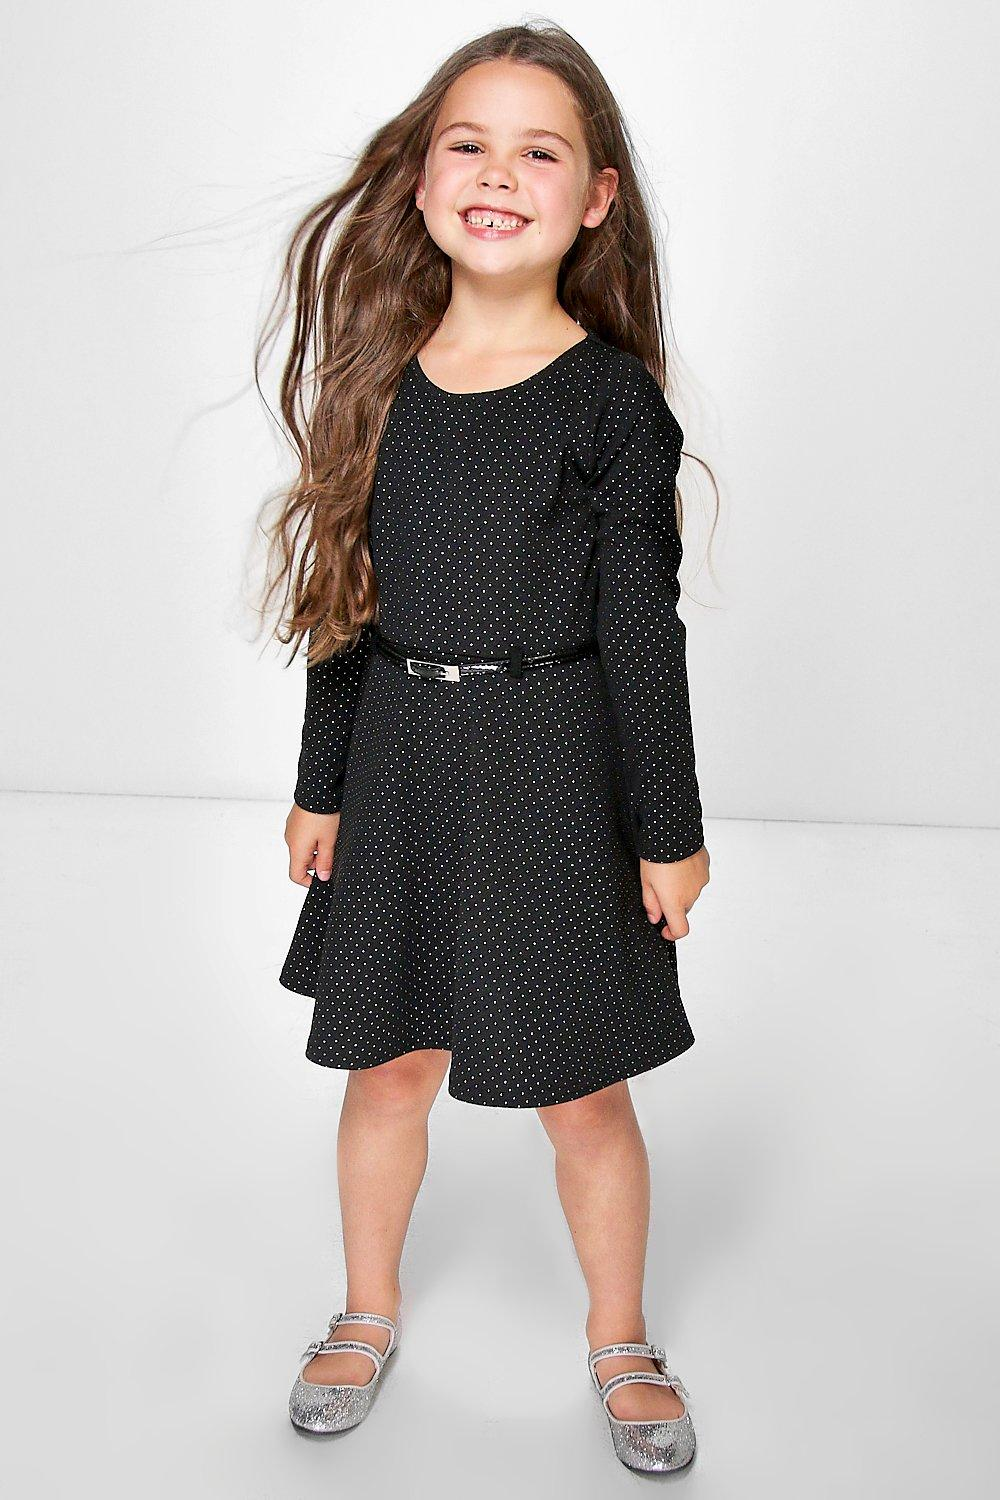 Girls Metallic Dot Belted Party Dress